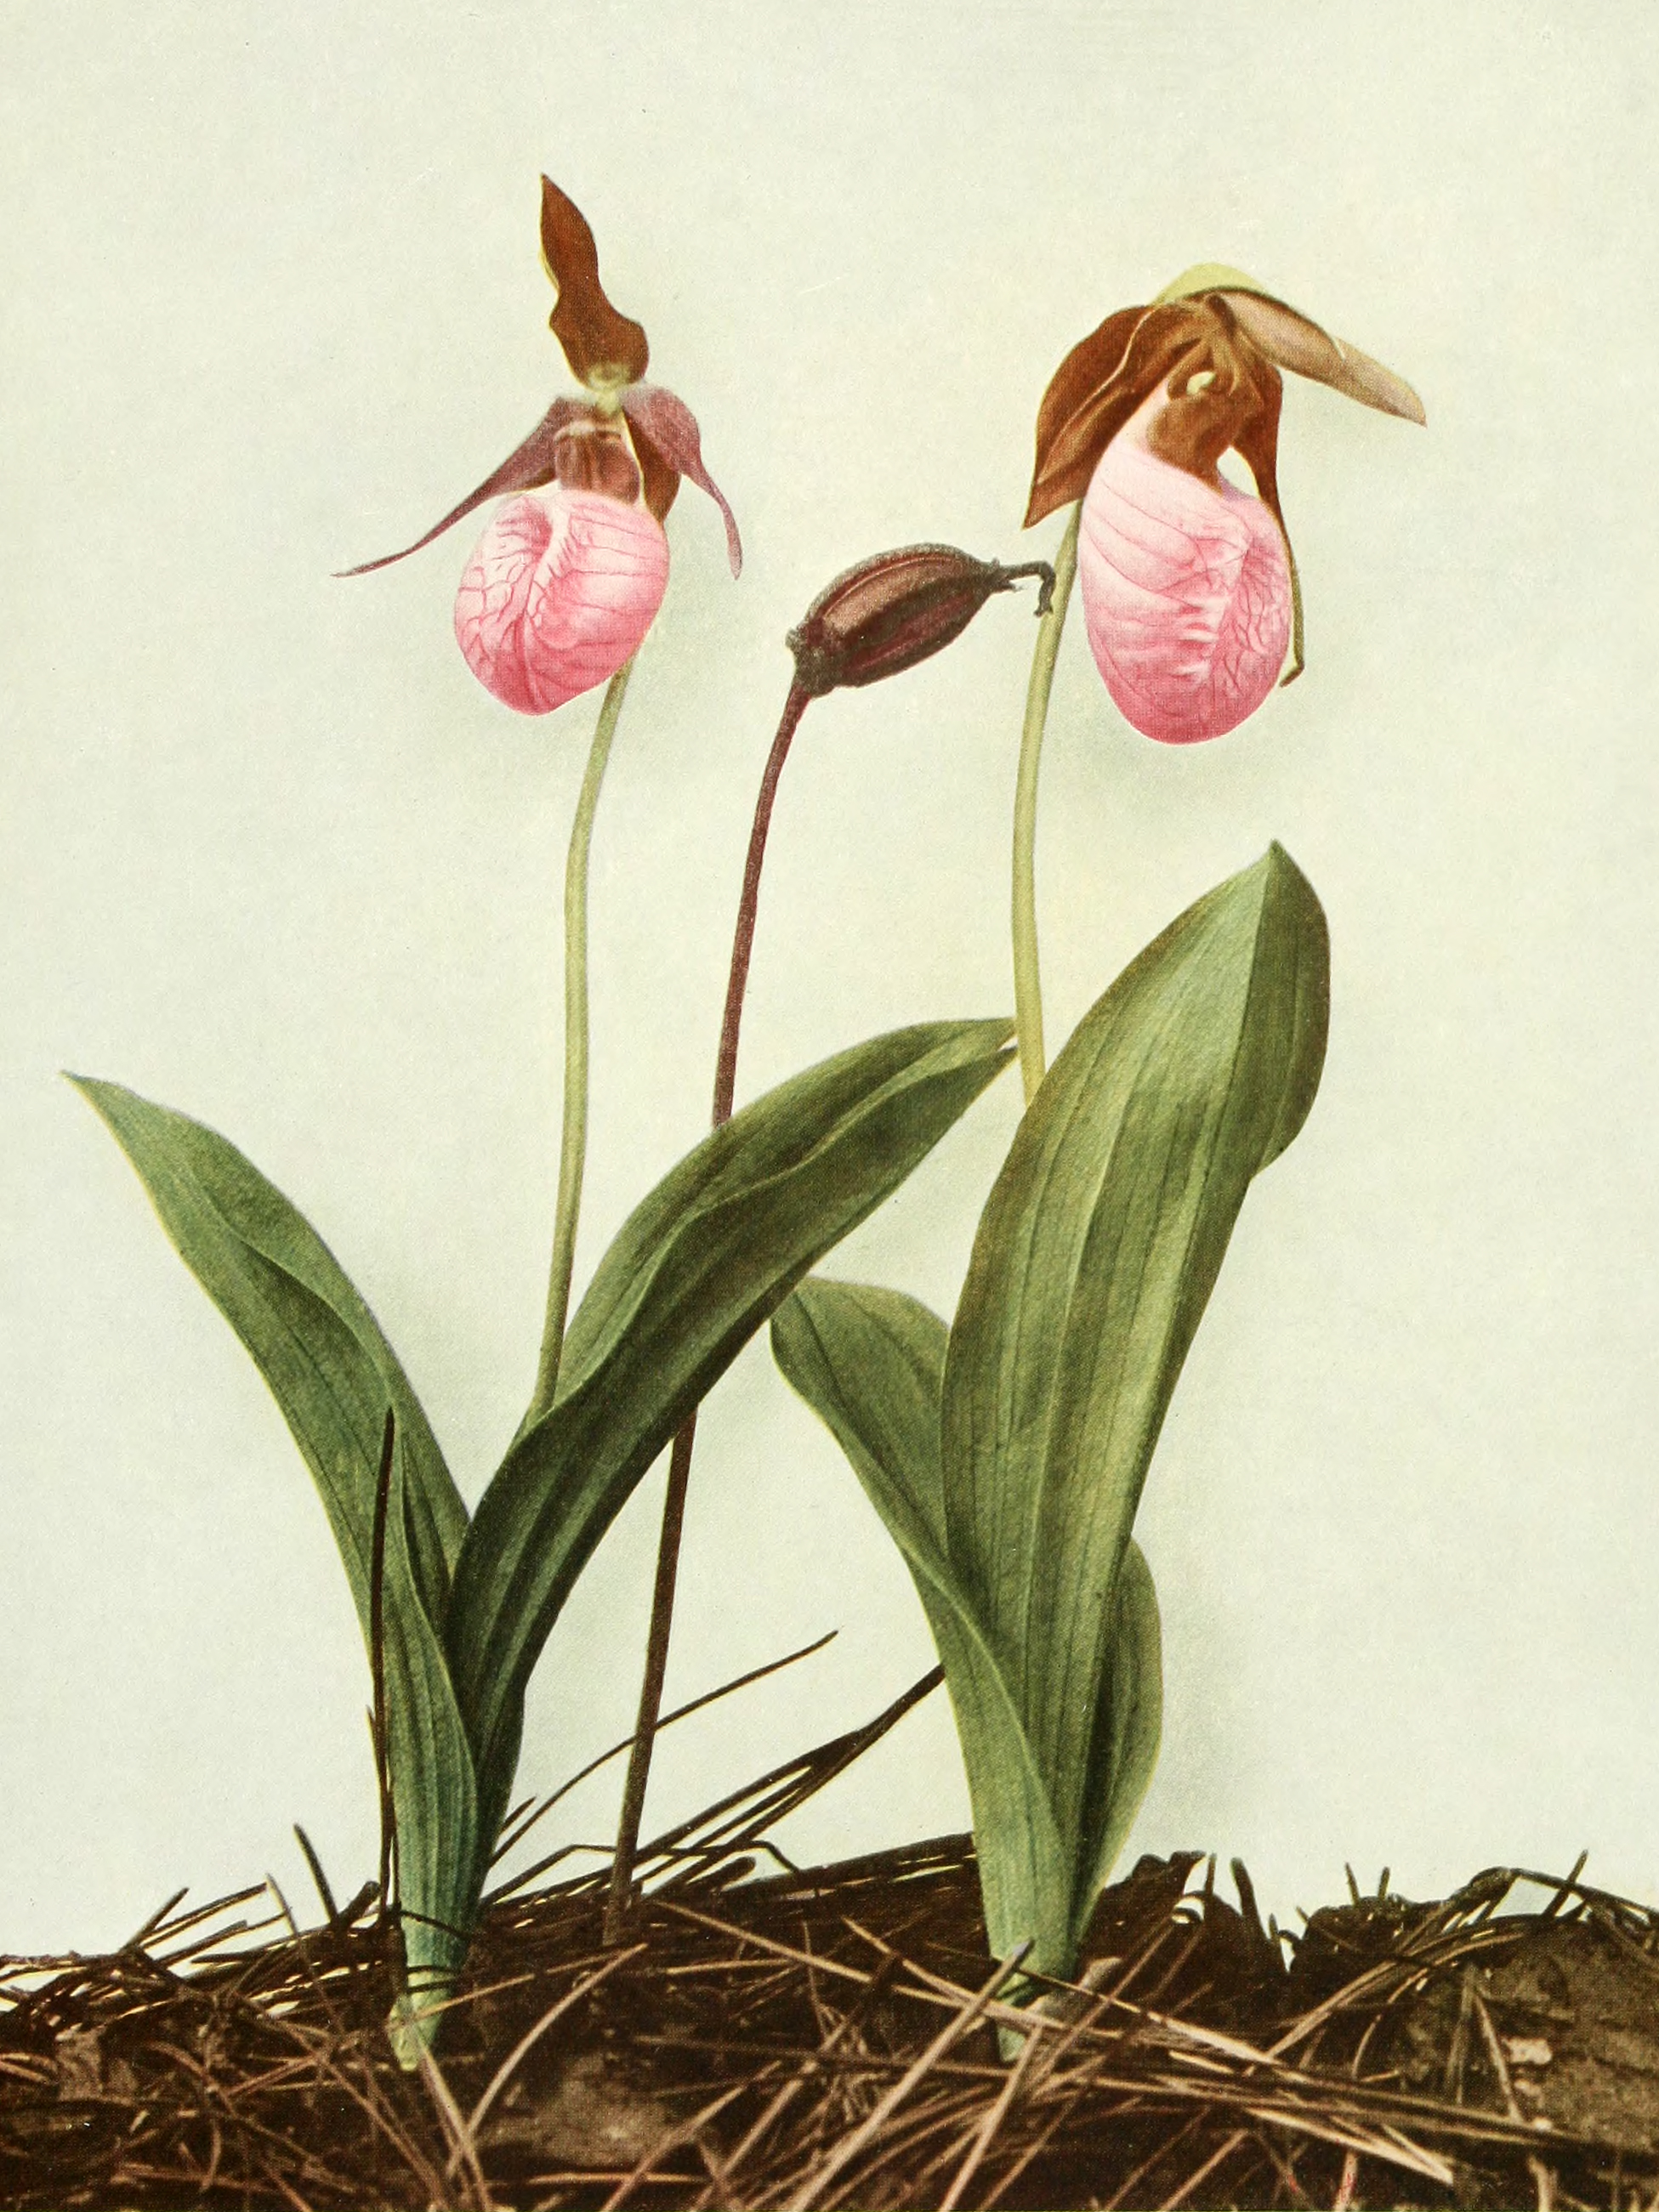 Cypripedium acaule (pink lady's slipper) from Wildflowers of New York, 1918